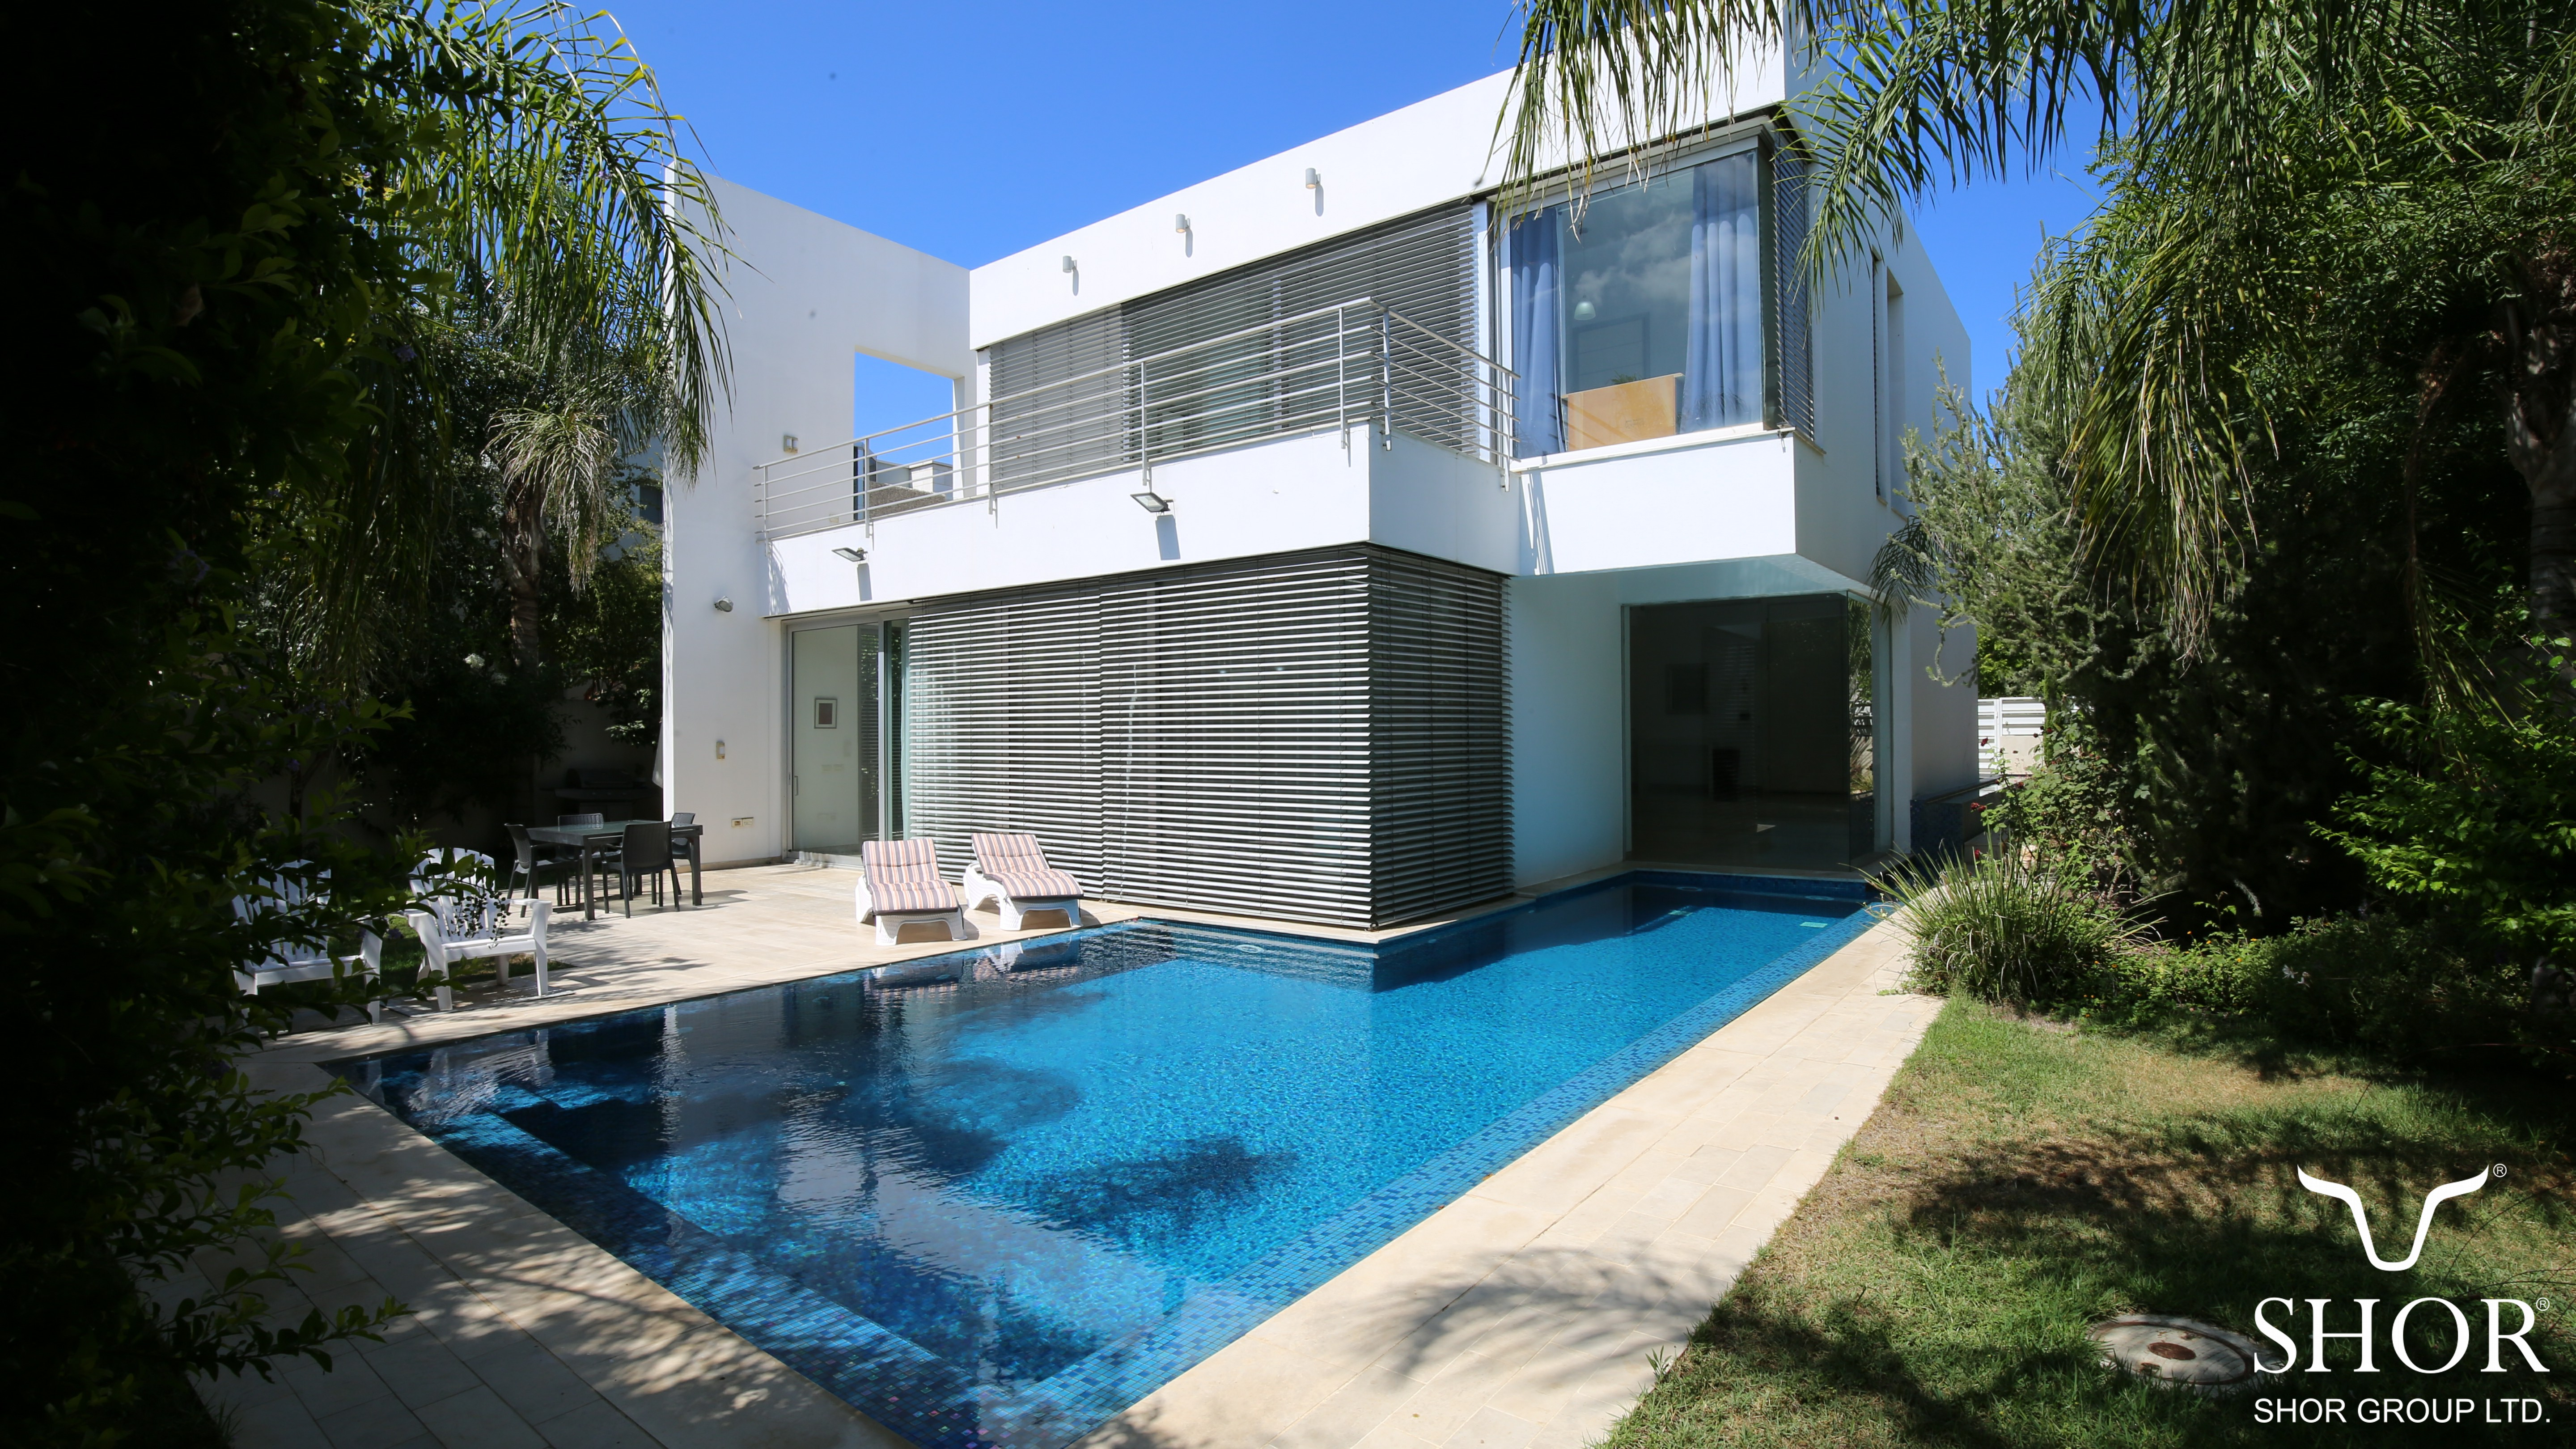 shor-group-do-it-well-shorealty-real-estate-amir-shor-luxury-home-for-sale-caesarea-israel-5